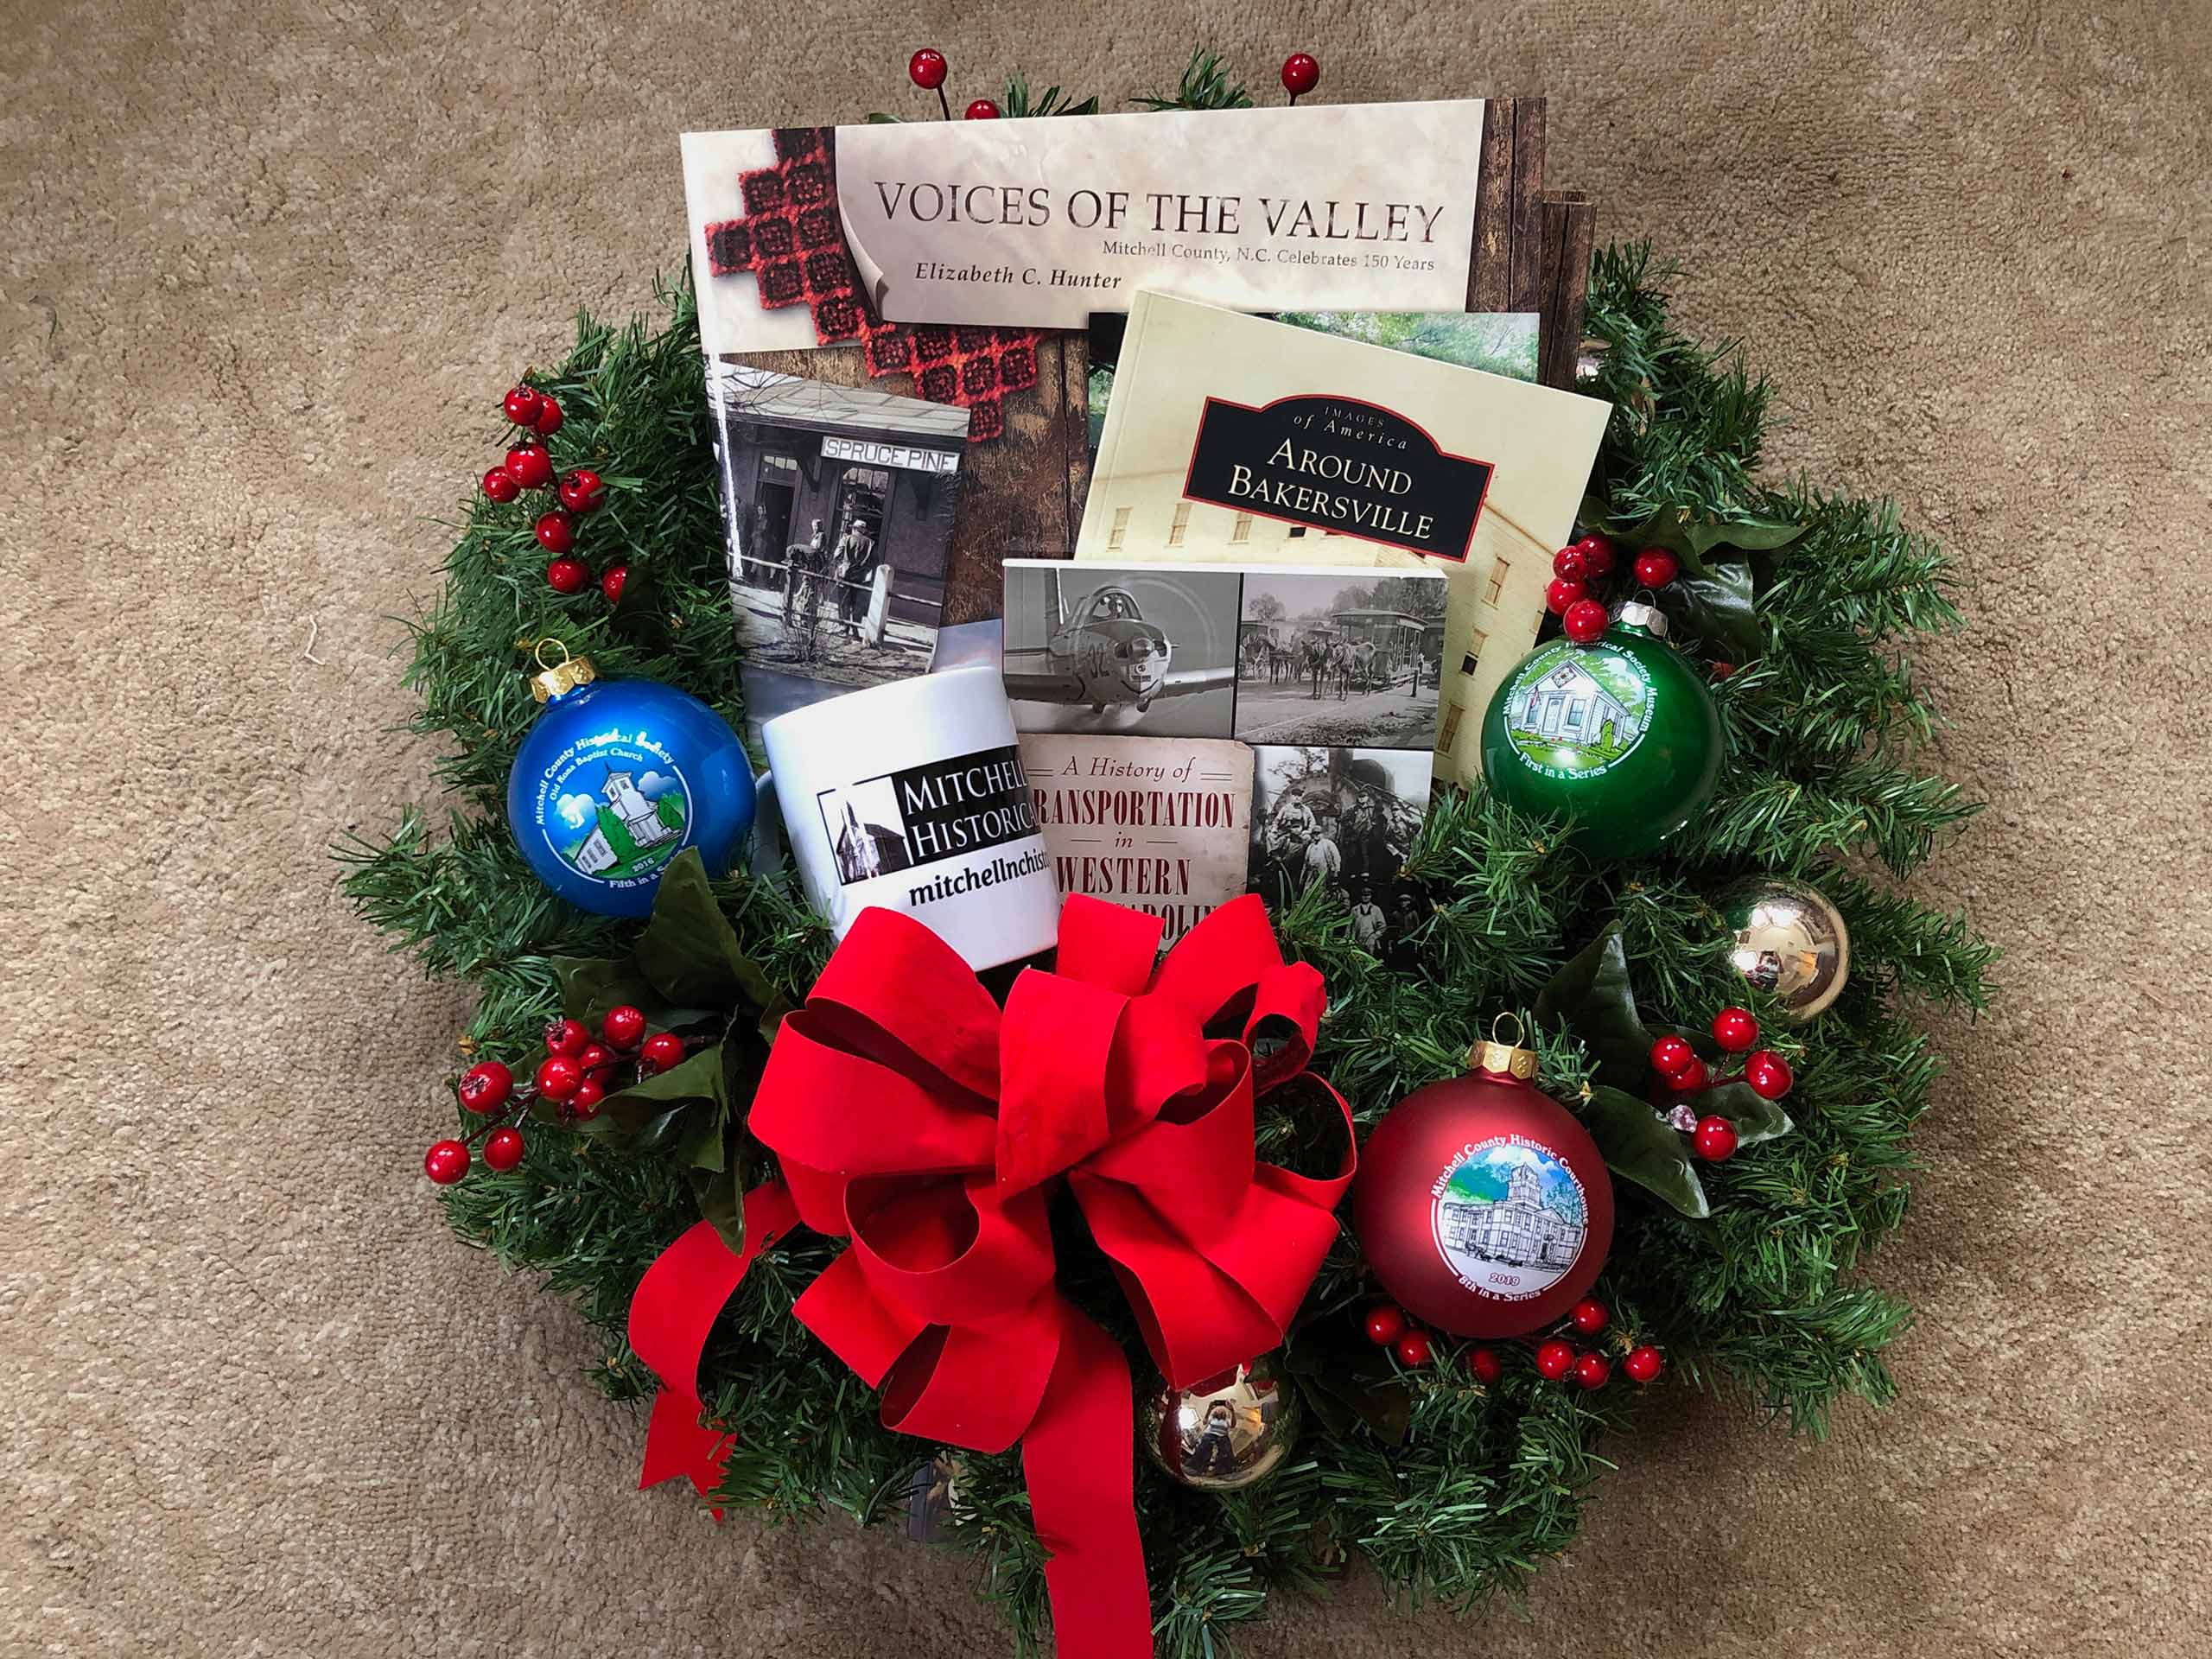 Photo of ornament and books in a Christmas Wreath